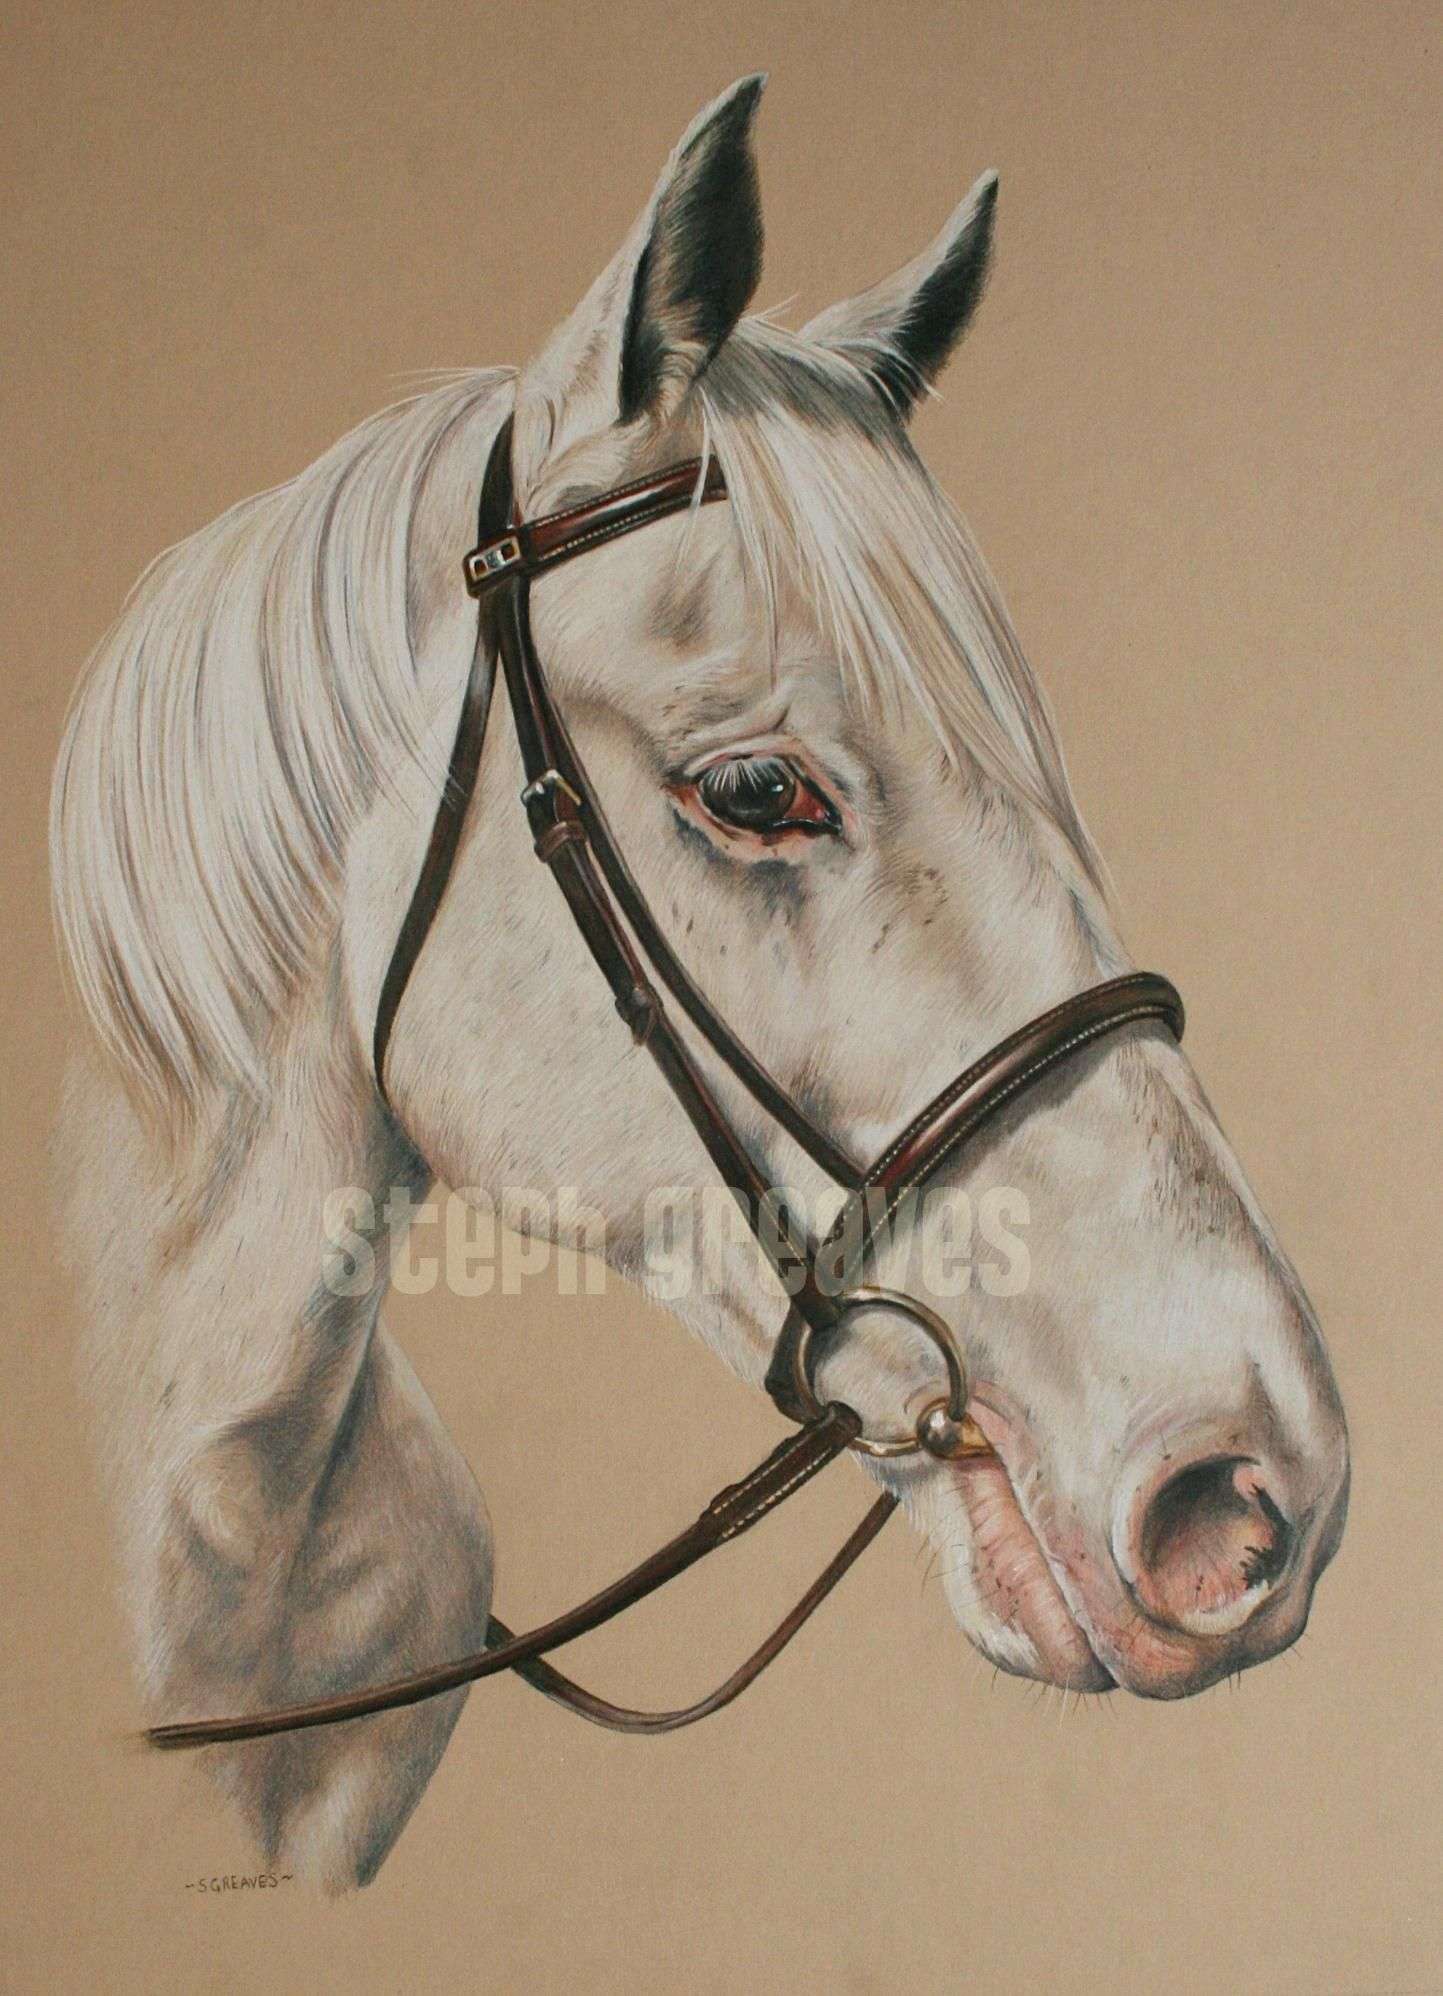 Horse in coloured pencil by http://stephaniegreaves.co.uk https://www.facebook.com/photo.php?fbid=682035275172363&set=pb.101899346519295.-2207520000.1390341343.&type=3&theater